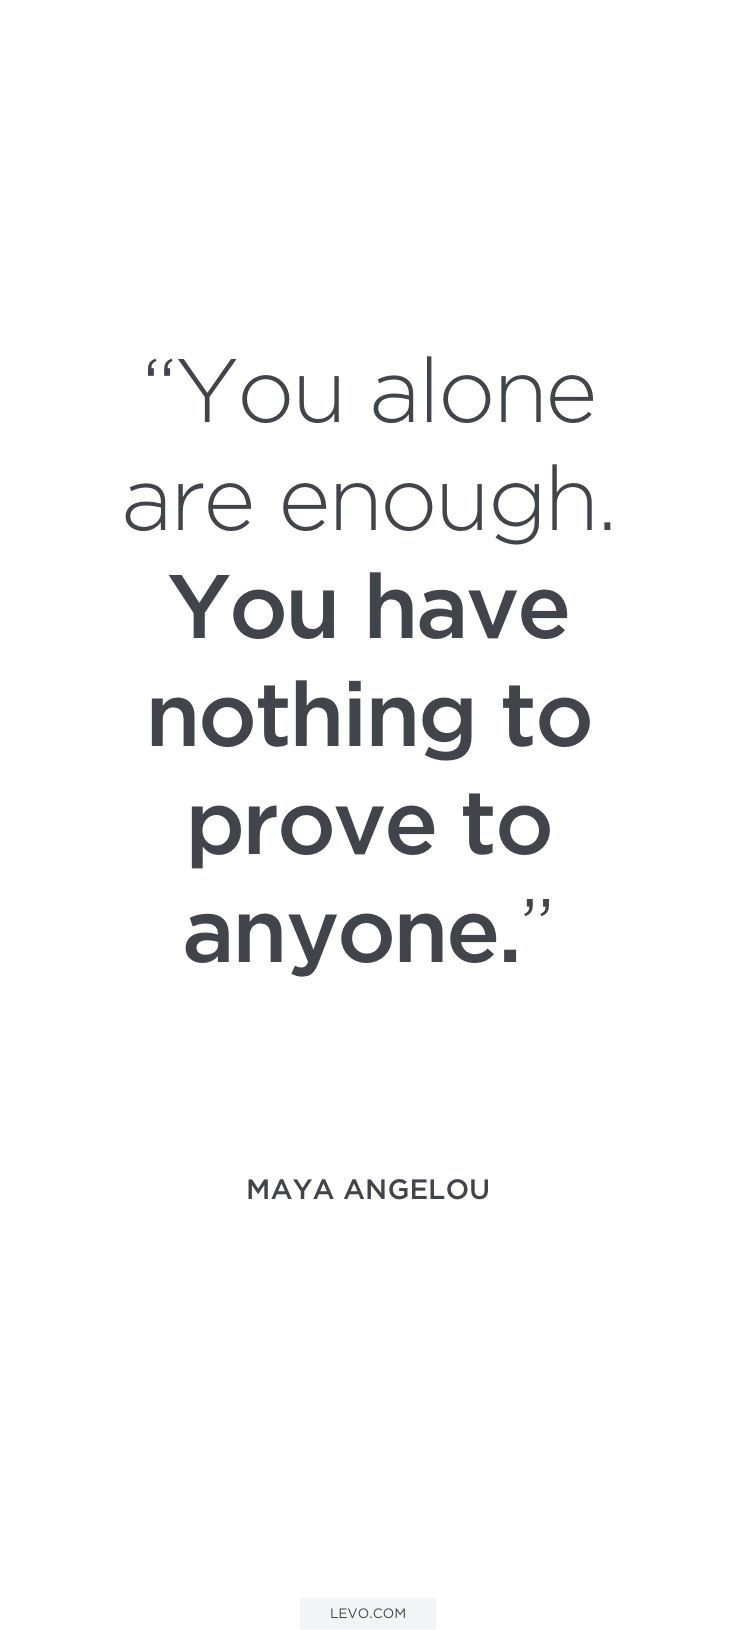 Quotes About Strength : You alone are enough. You have